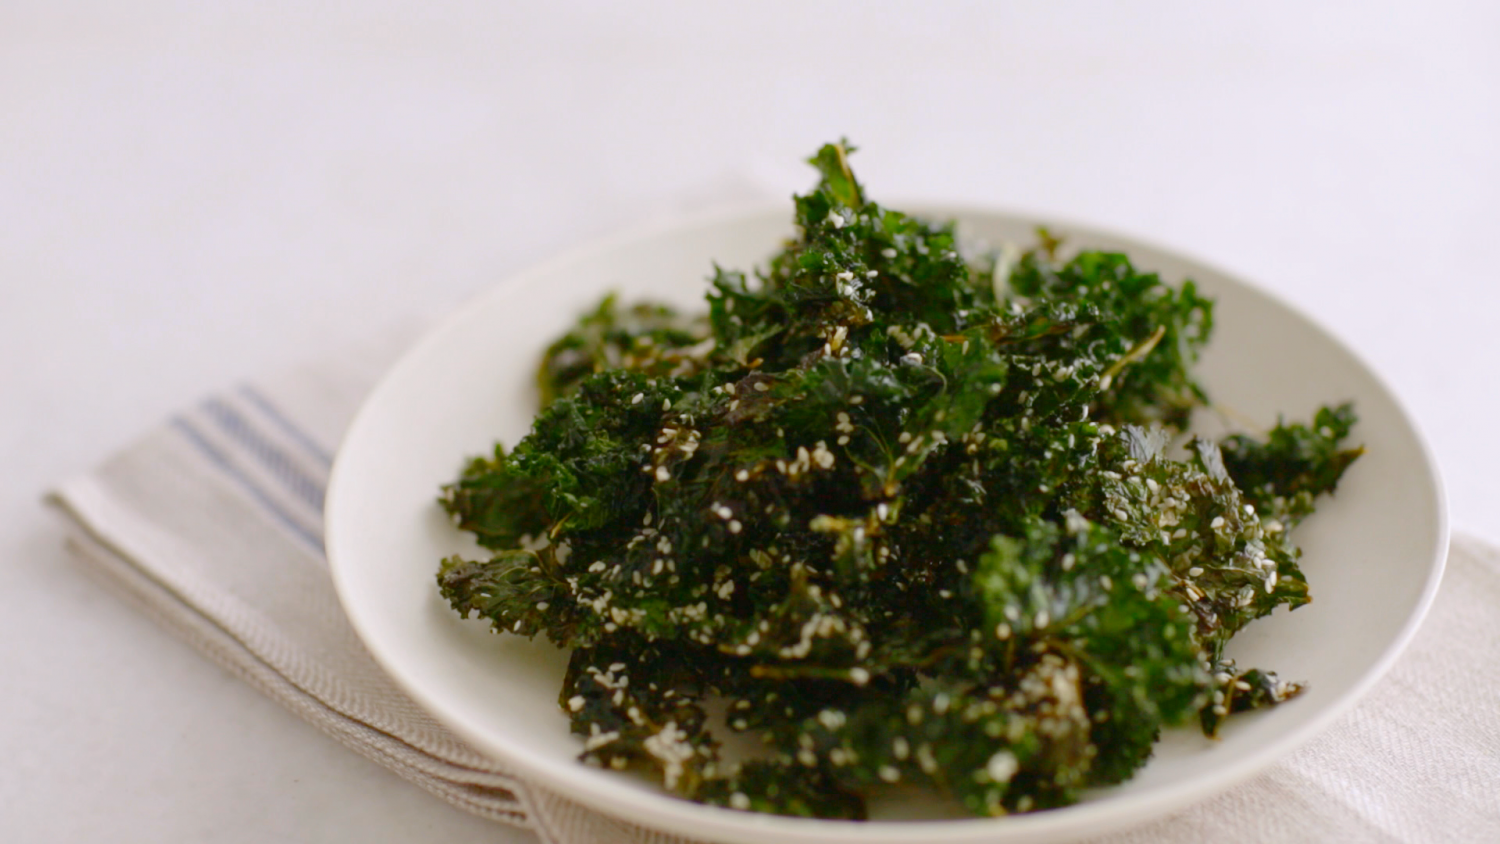 Home Grown Country Life: Kale chips recipe